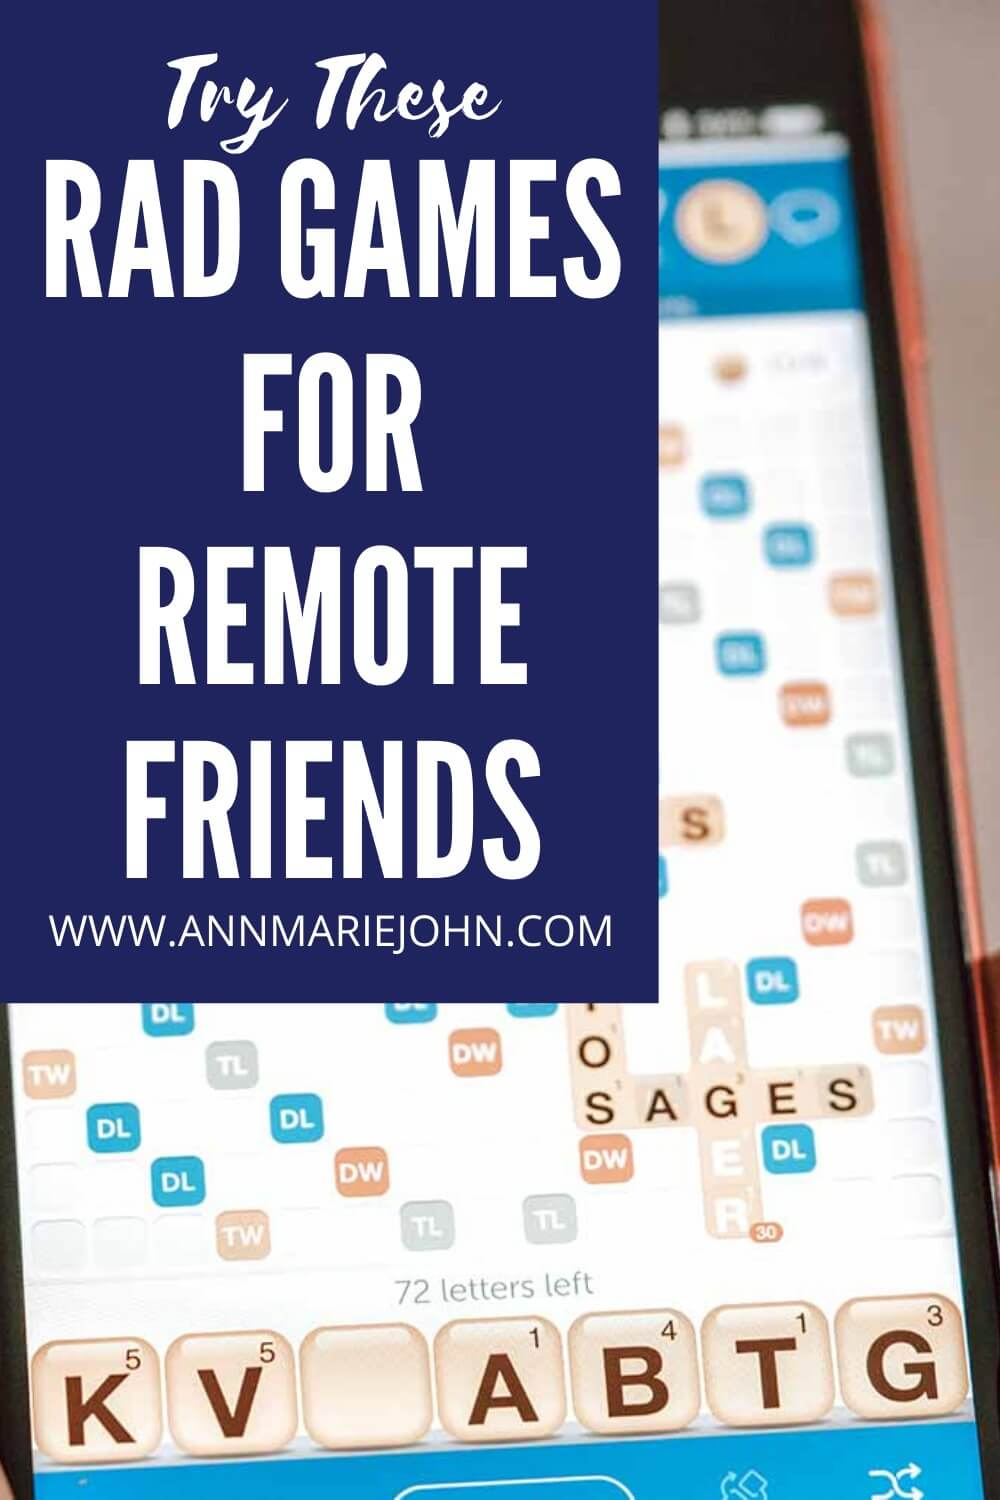 Rad Games for Remote Friends Pinterest Image